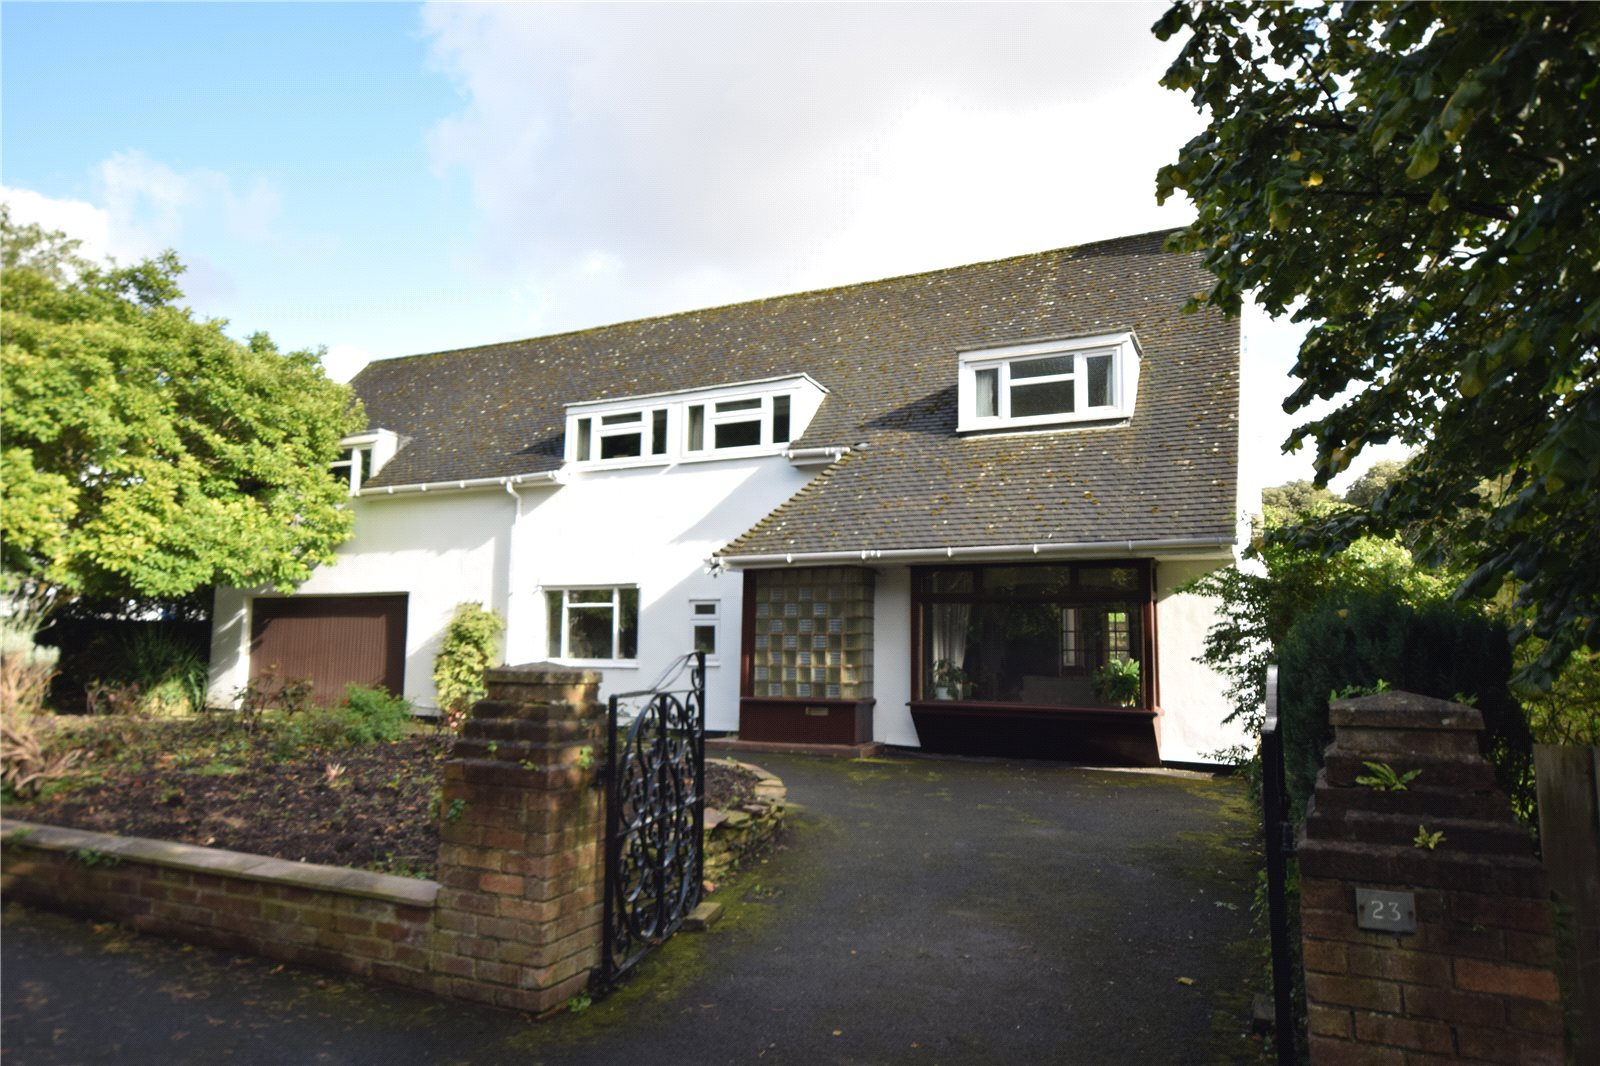 5 Bedrooms Detached House for sale in South Road, Grassendale Park, Liverpool, L19